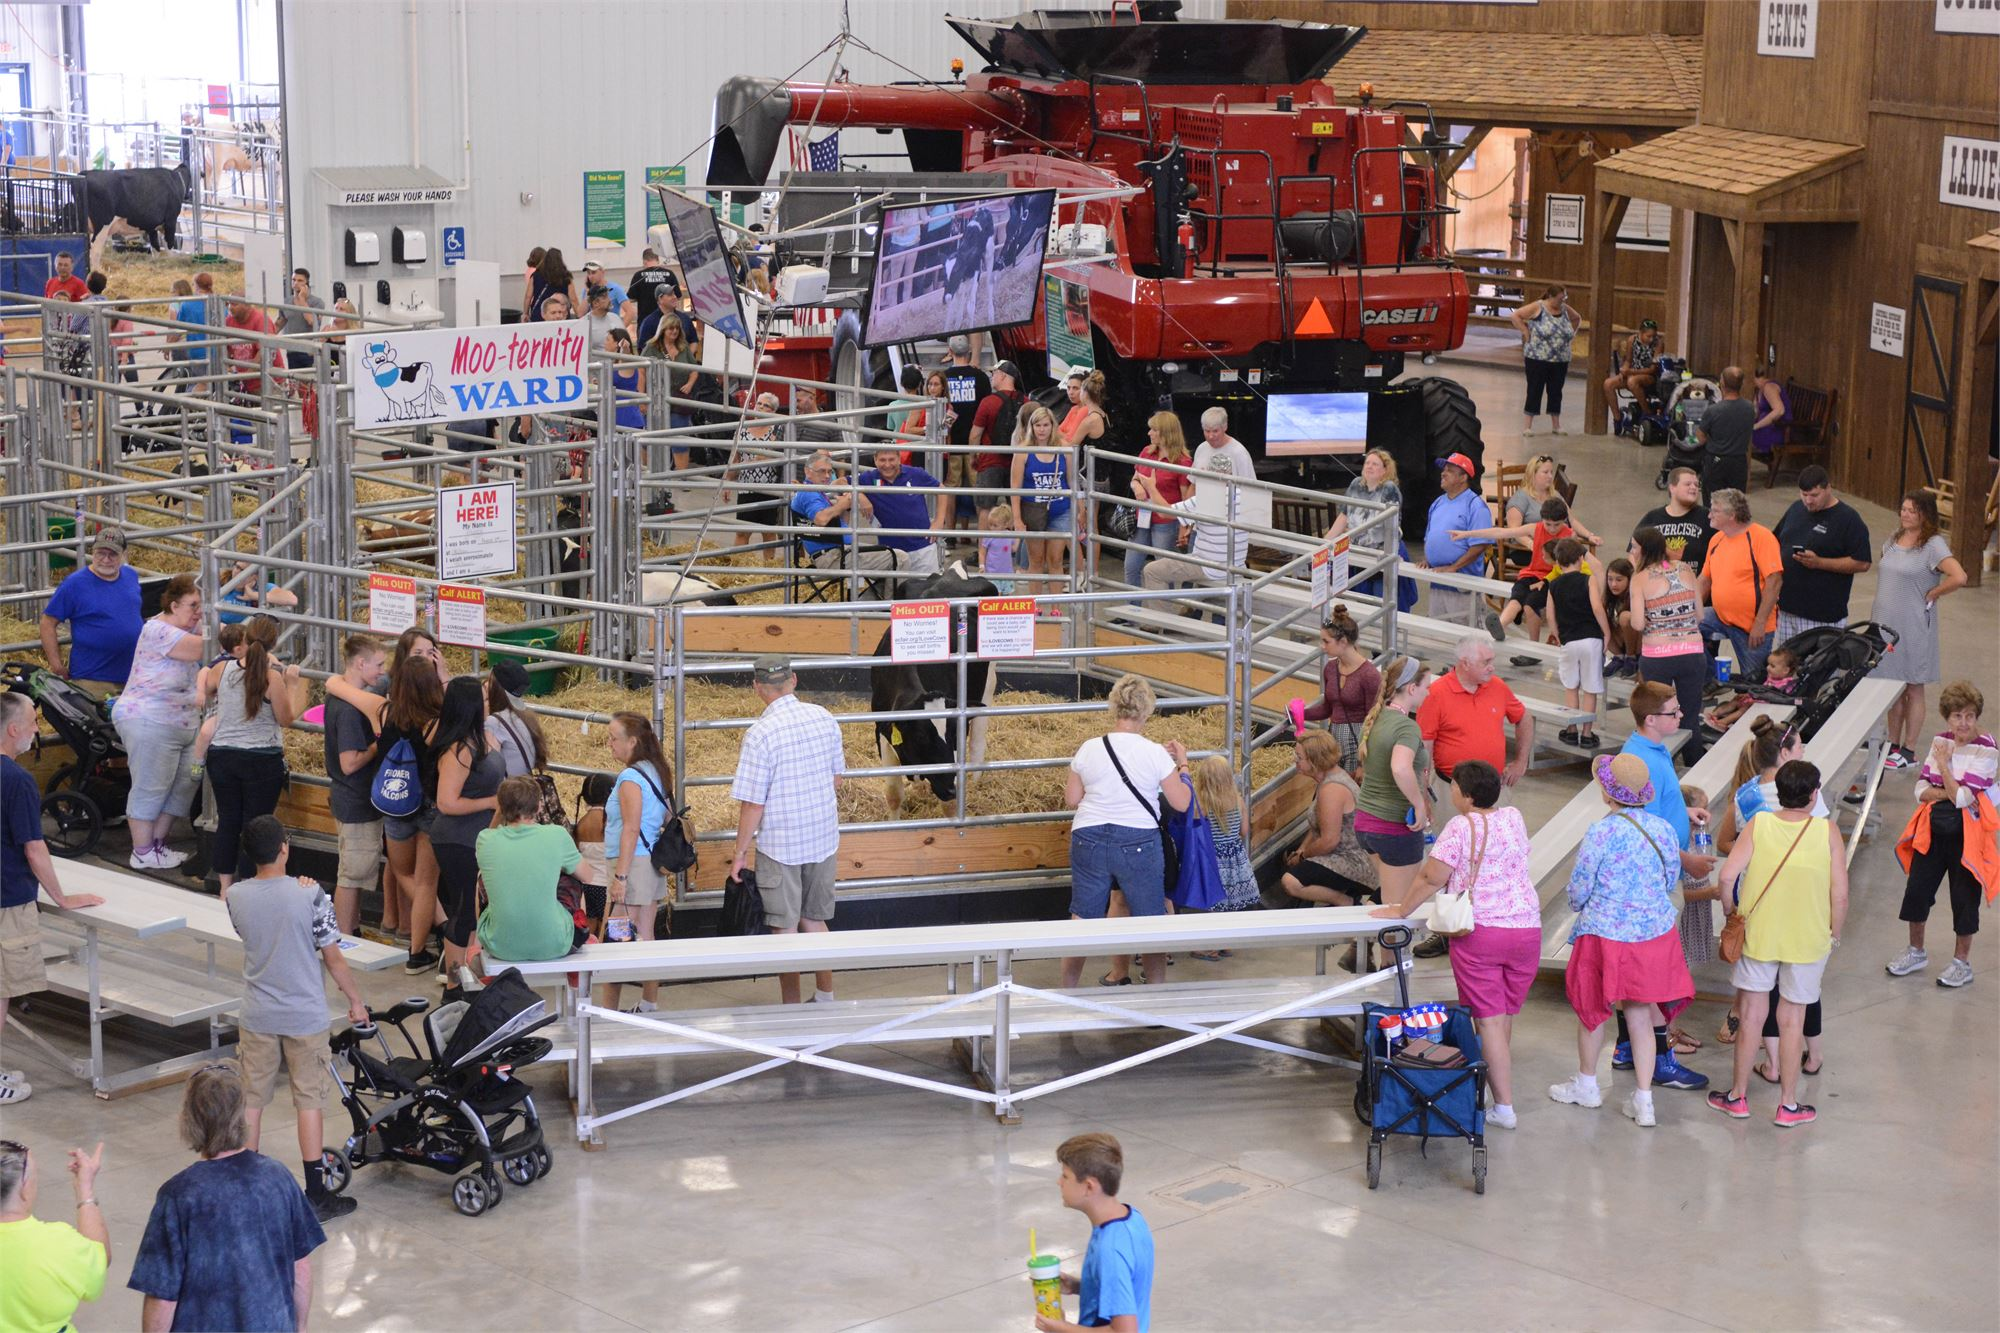 Inside the Agriculture Discovery Center